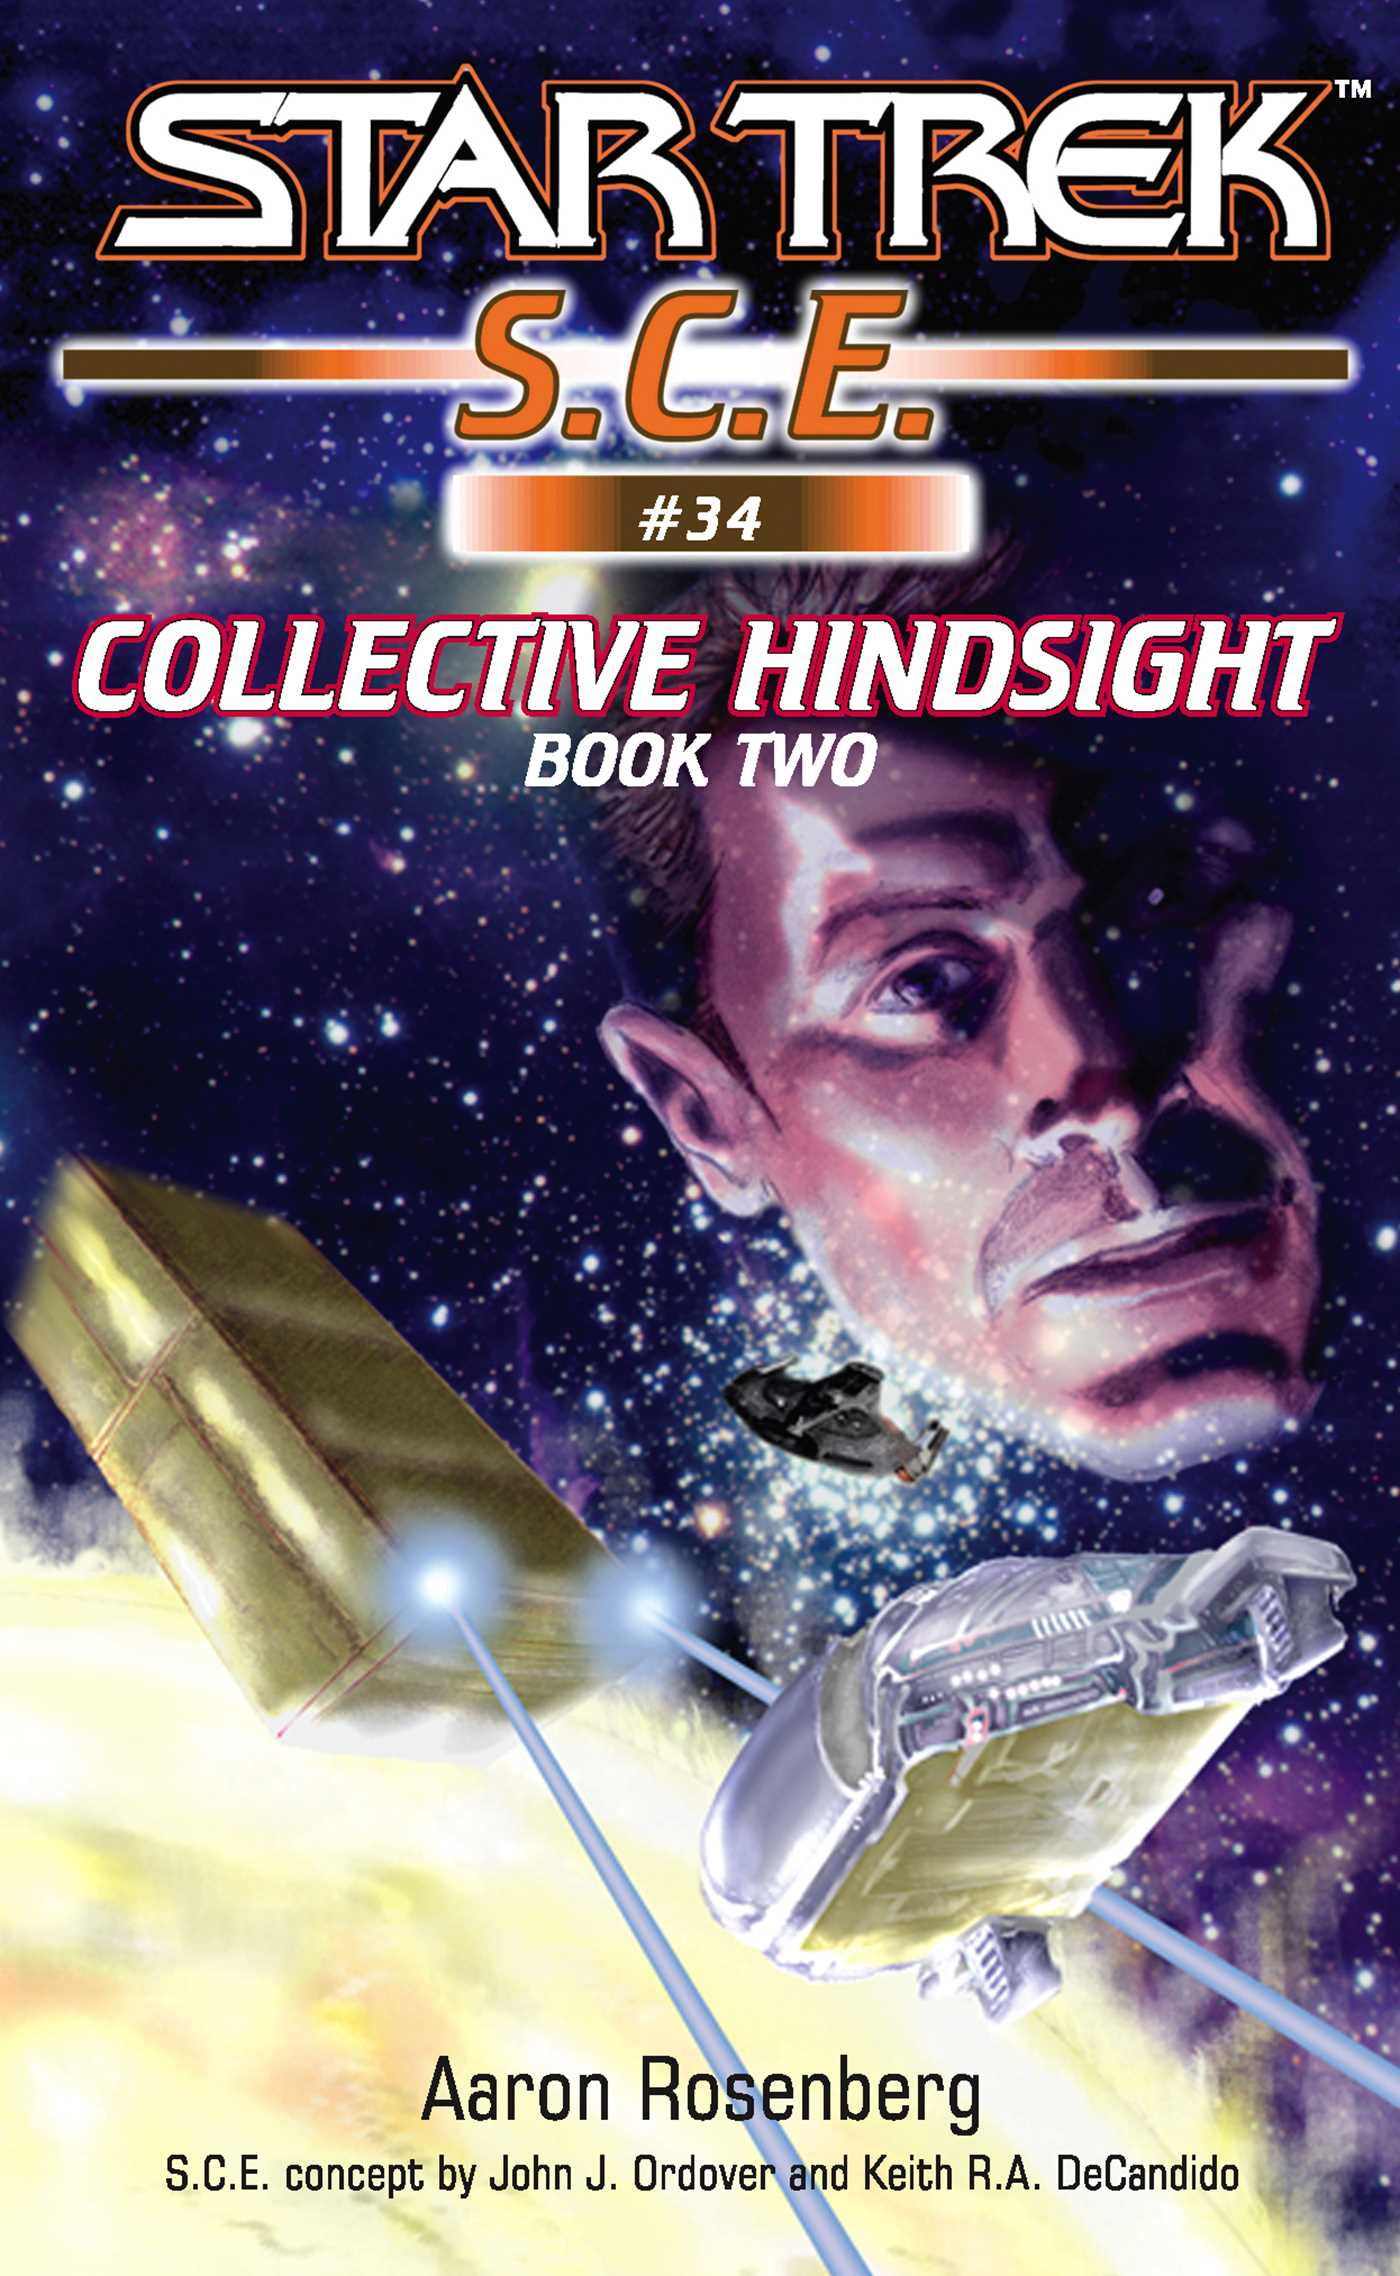 Star trek collective hindsight book 2 9780743480840 hr